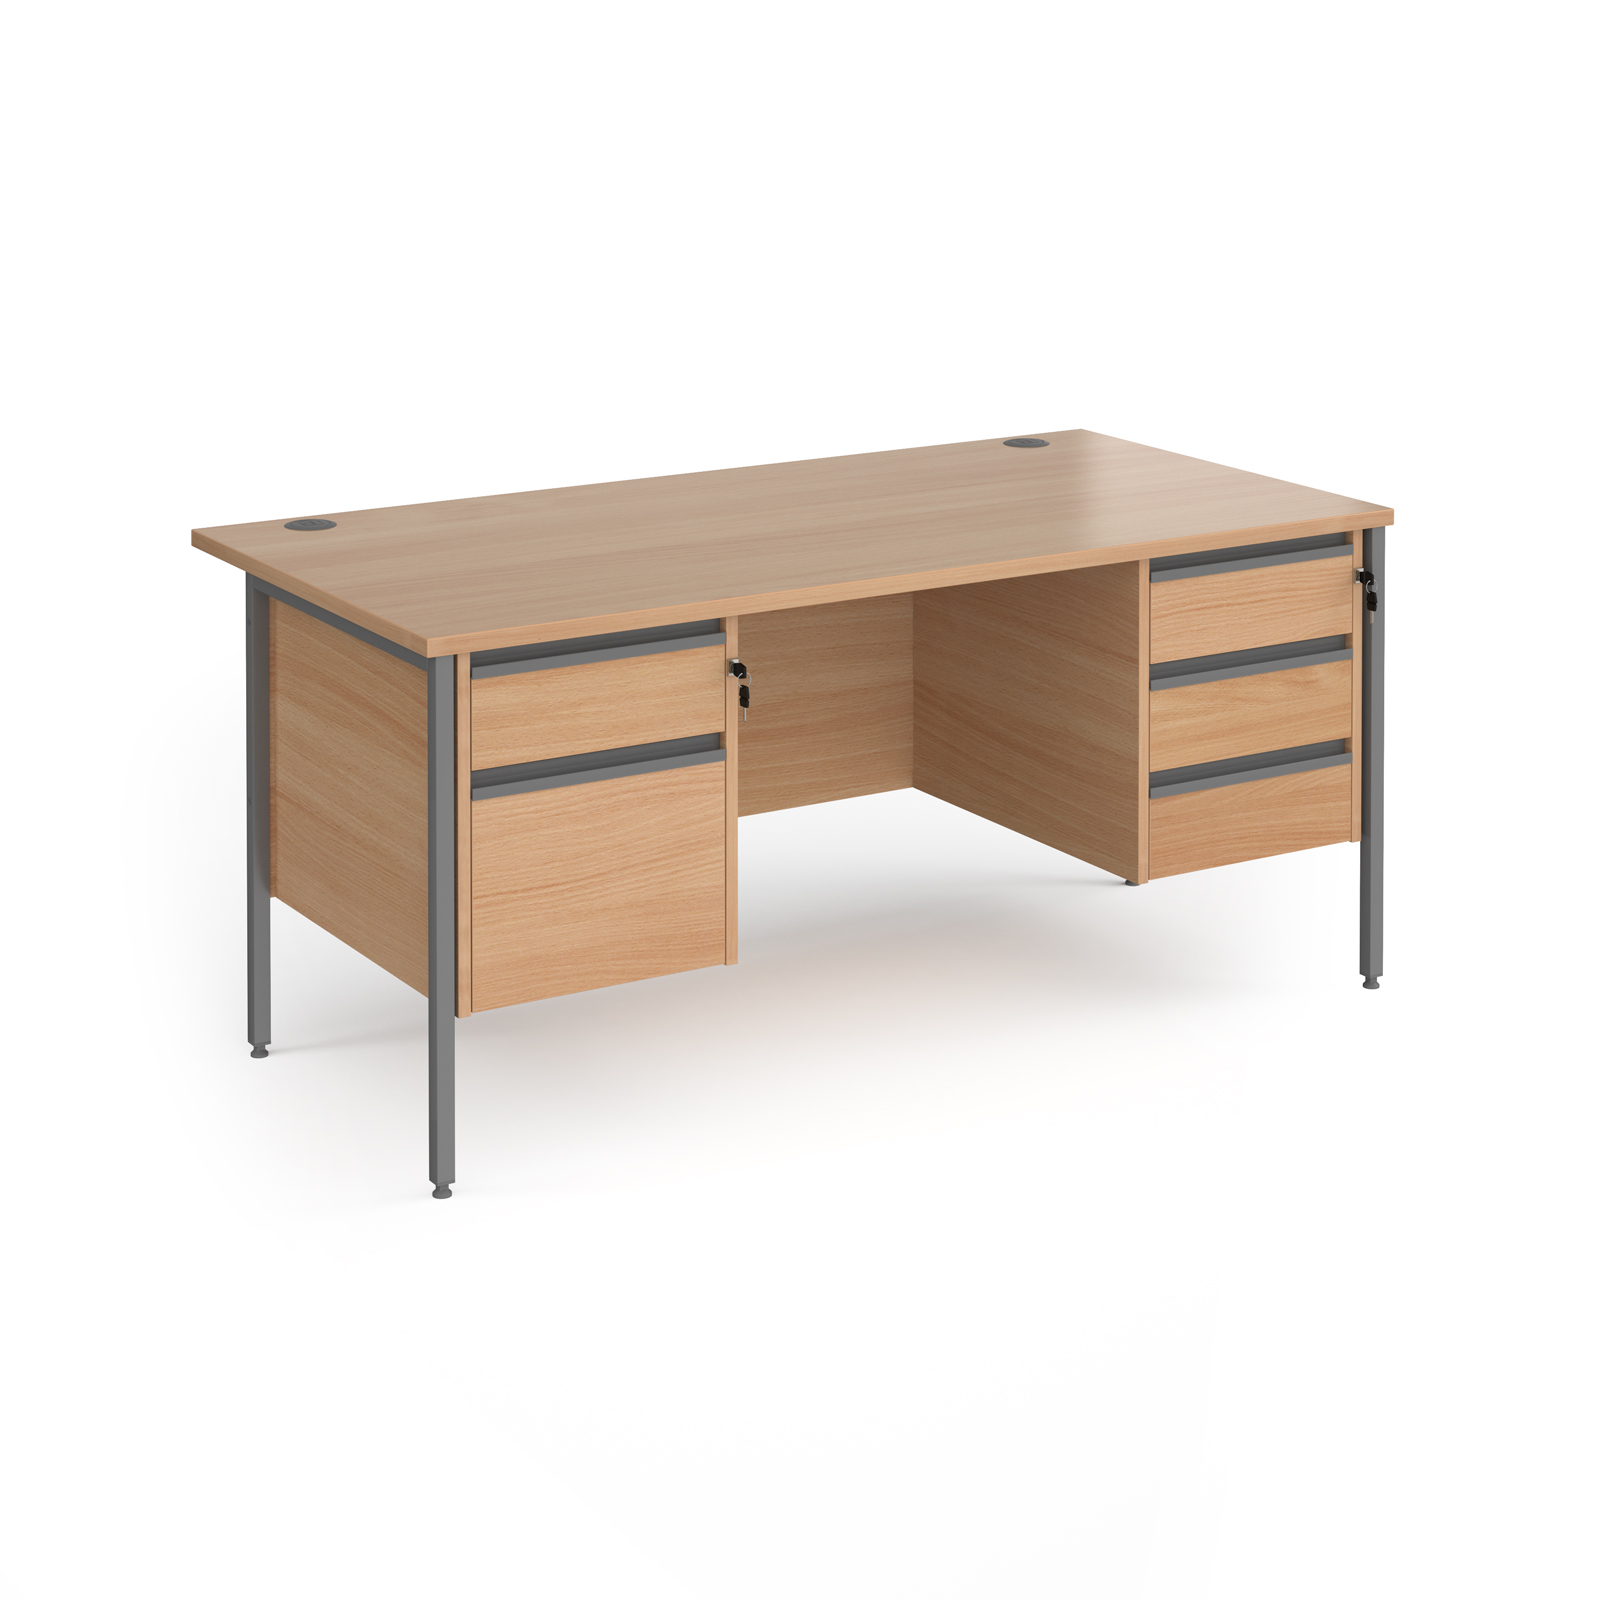 Rectangular Desks Contract 25 H-Frame straight desk with 2 and 3 drawer peds